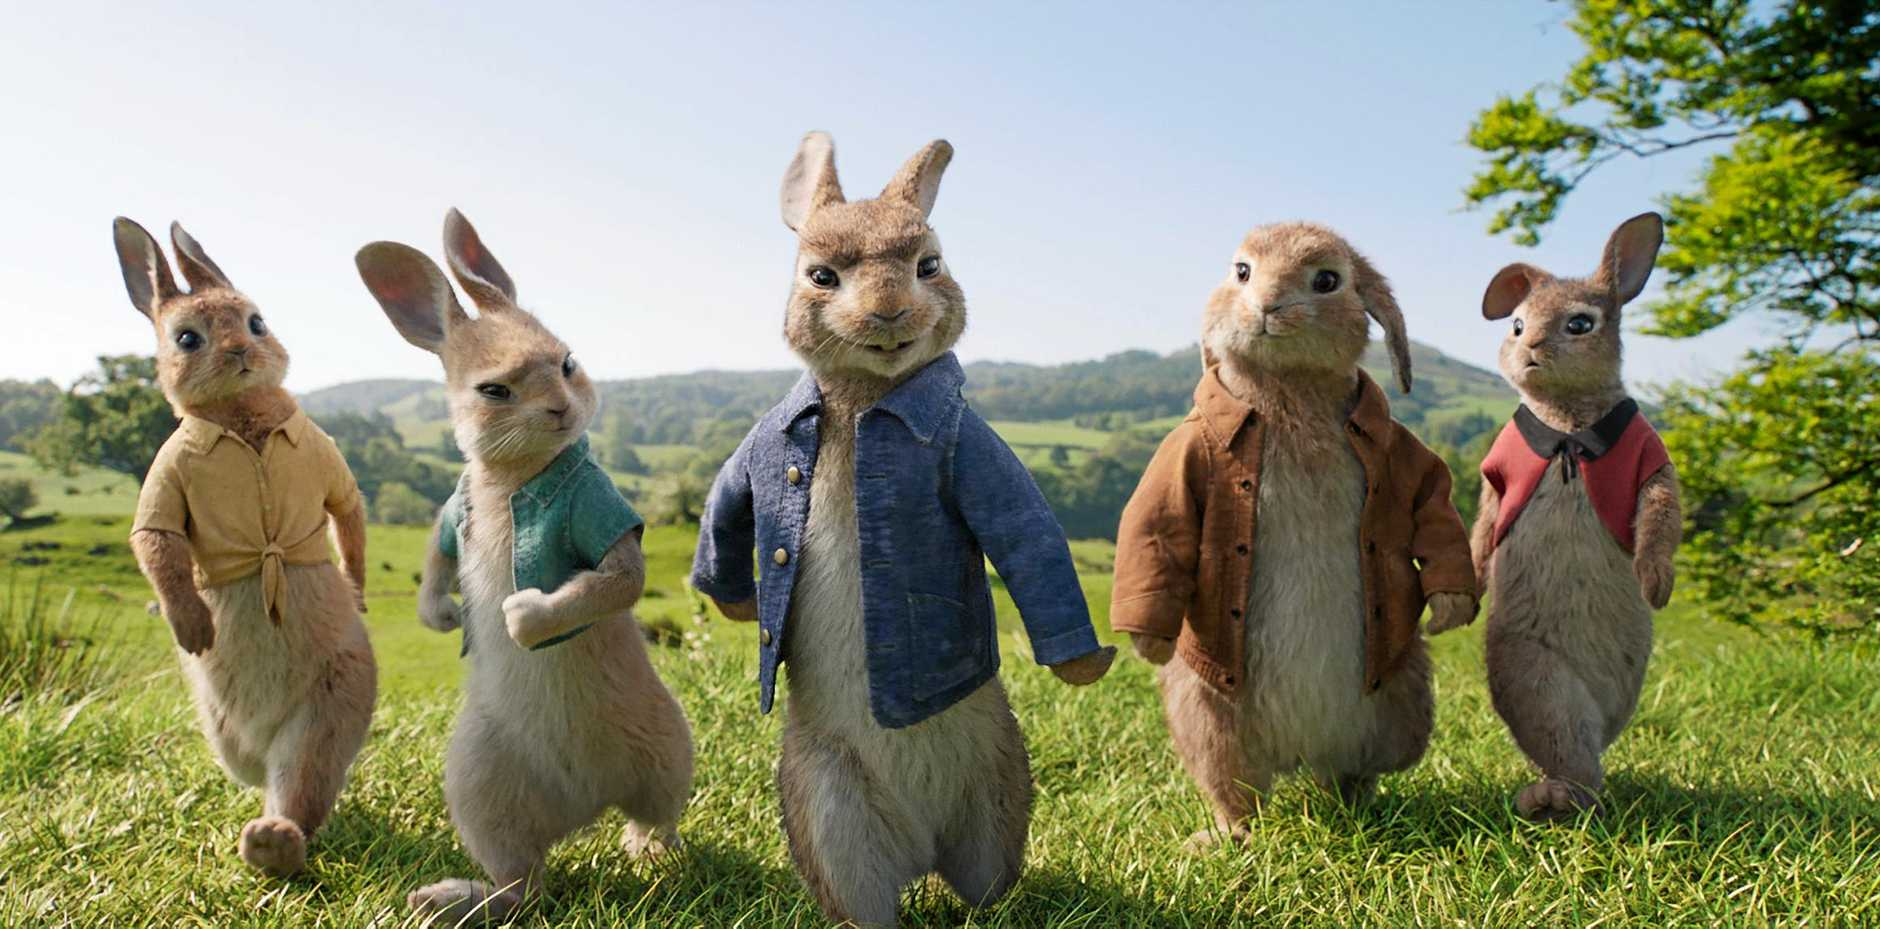 Mopsy (Elizabeth Debicki), Cottontail (Daisy Ridley), Peter Rabbit (James Corden), Benjamin (Colin Moody) and Flopsy (Margot Robbie) in a scene from the movie Peter Rabbit. Supplied by Sony Pictures.